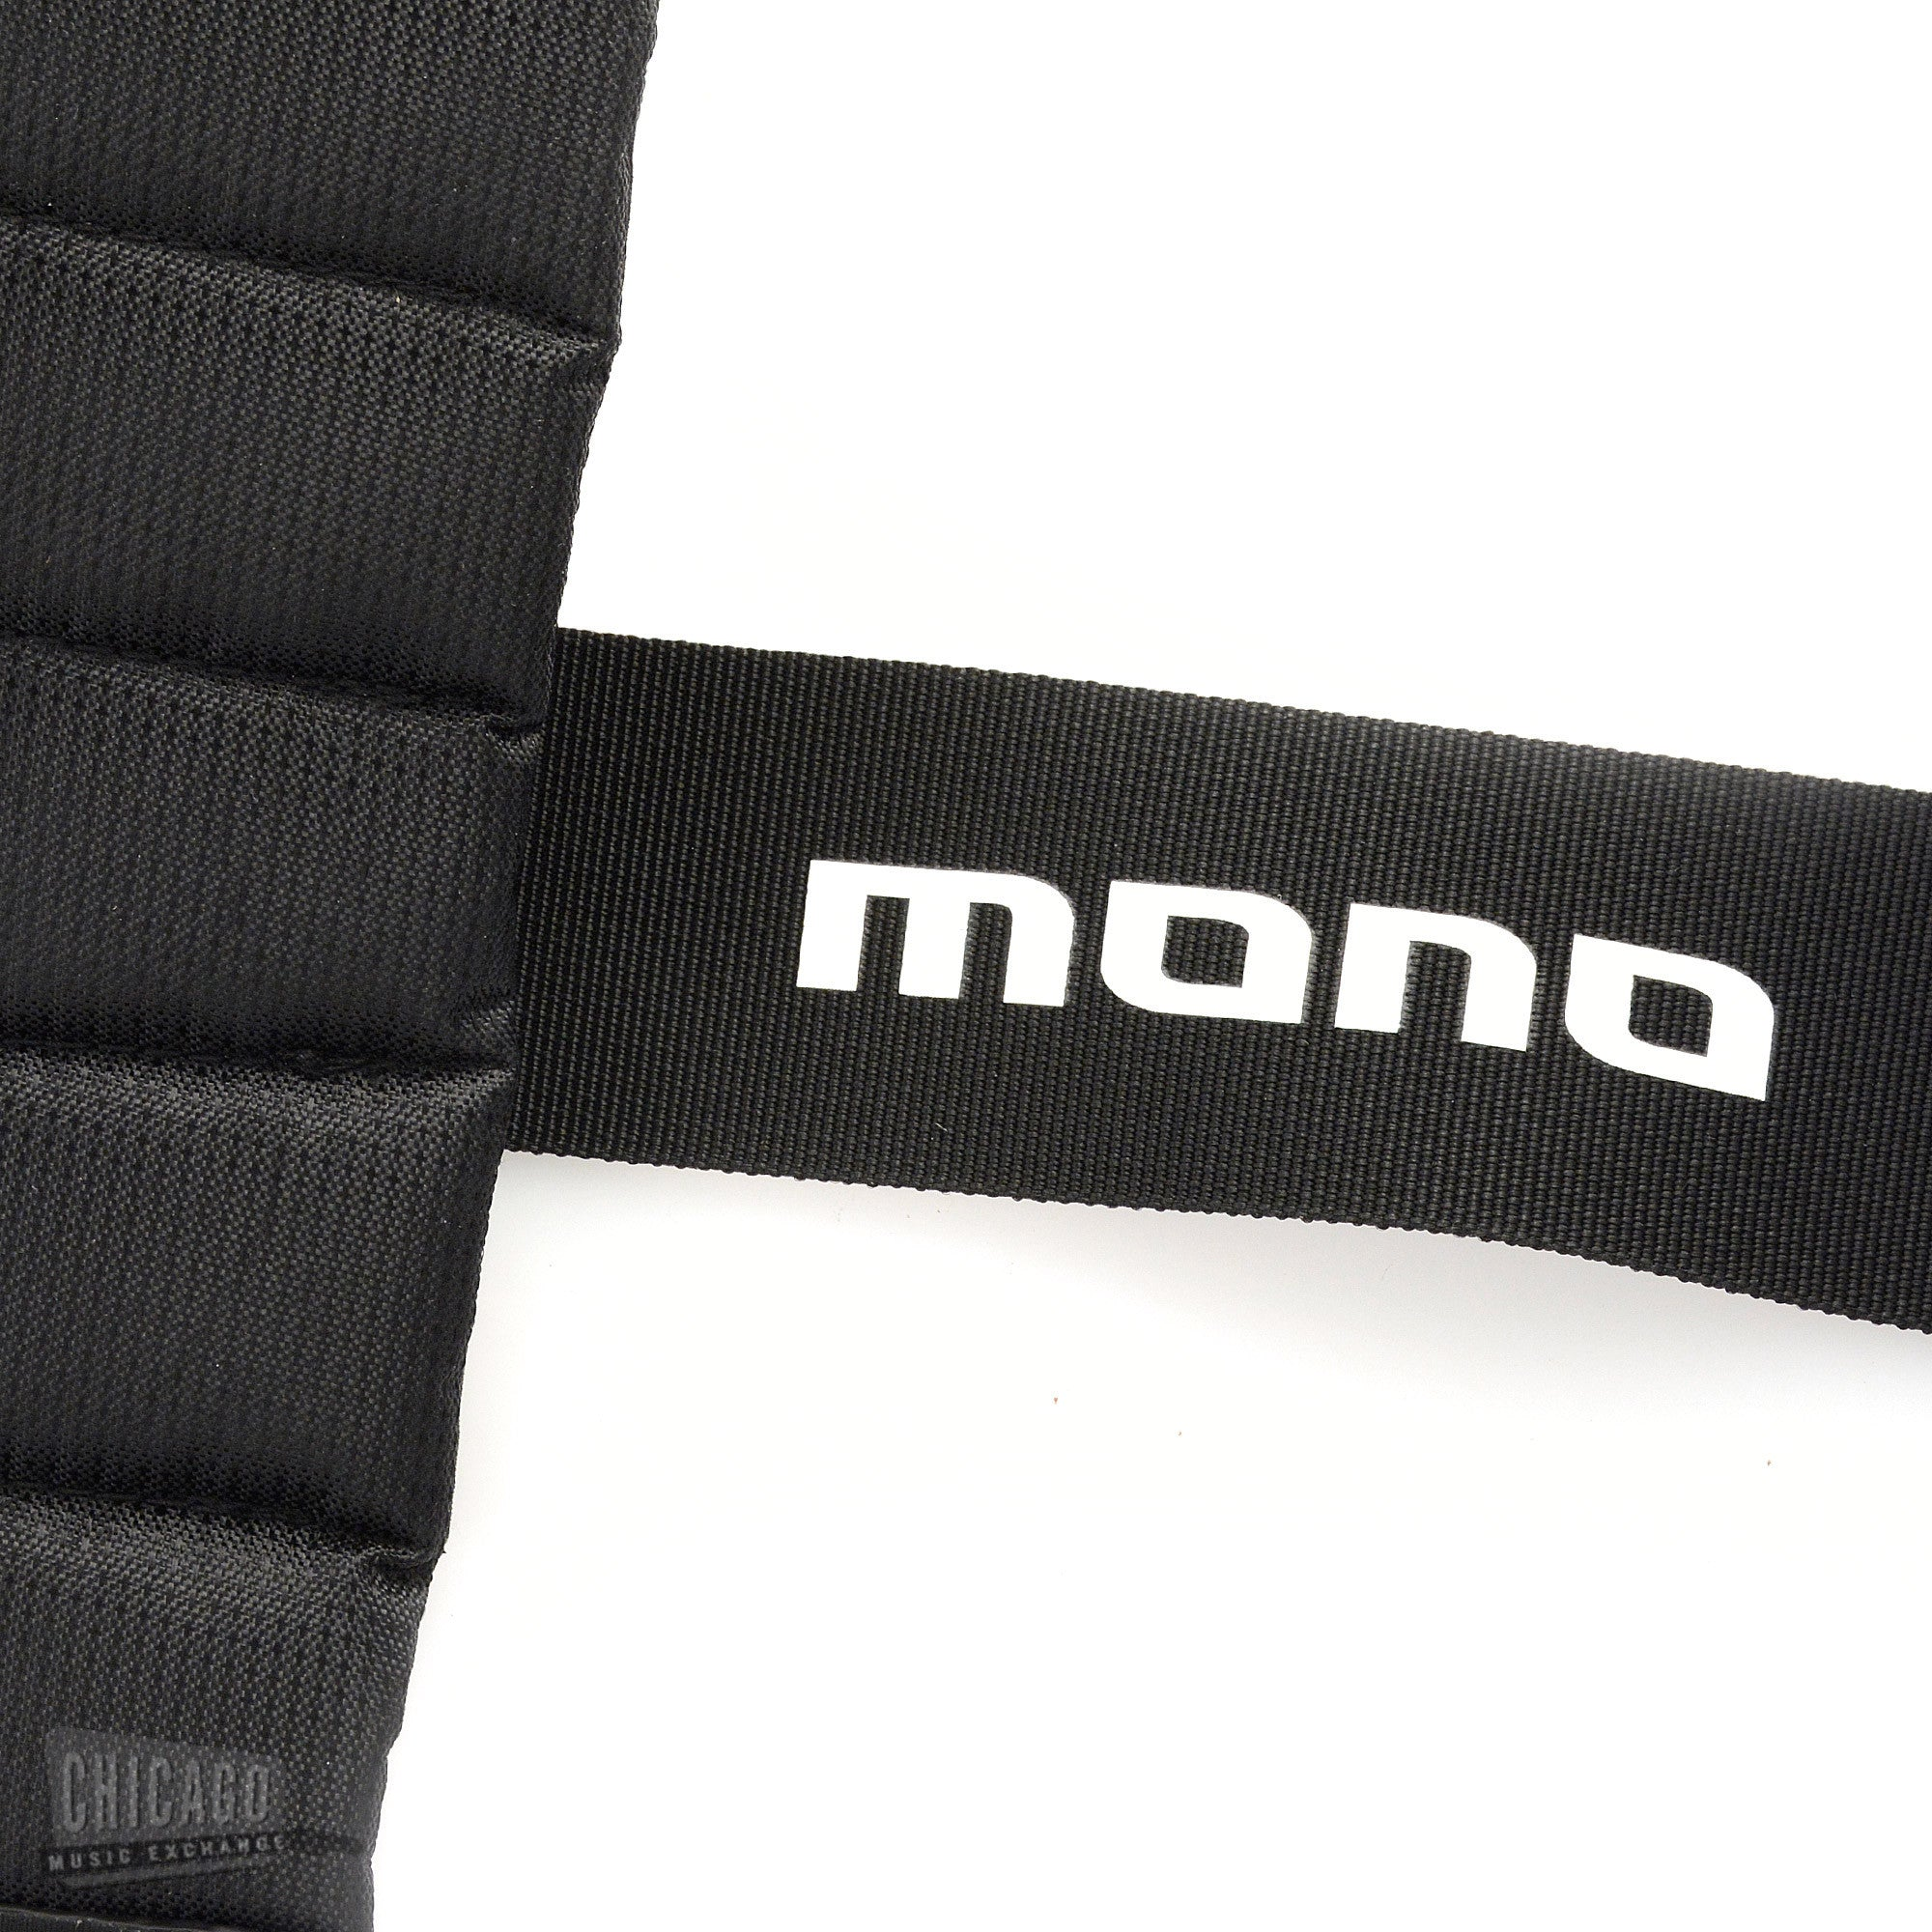 mono betty guitar strap sharkskin jet black short chicago music exchange. Black Bedroom Furniture Sets. Home Design Ideas